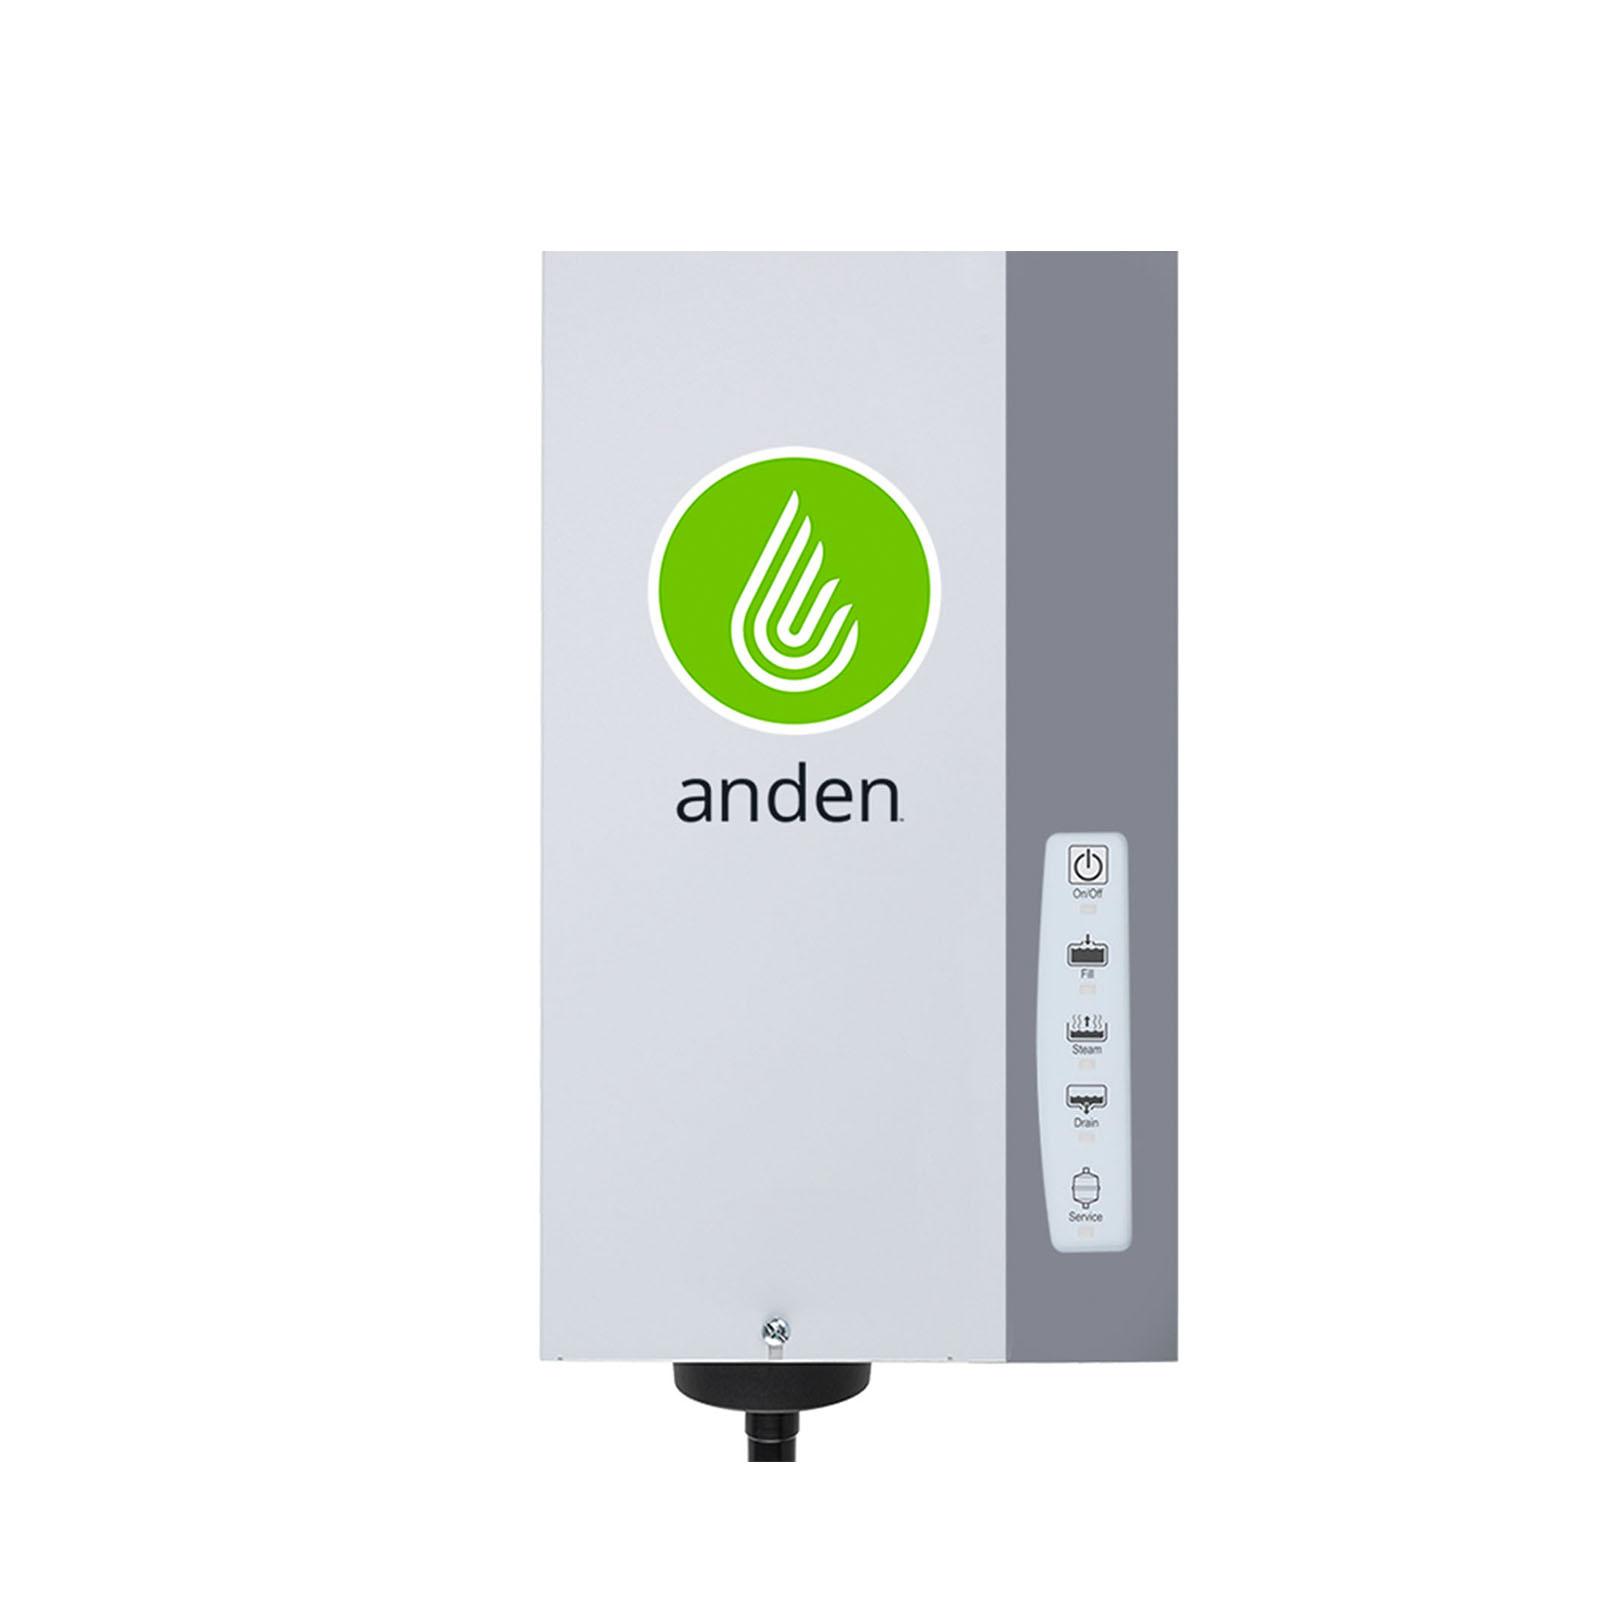 Anden Steam Humidifier